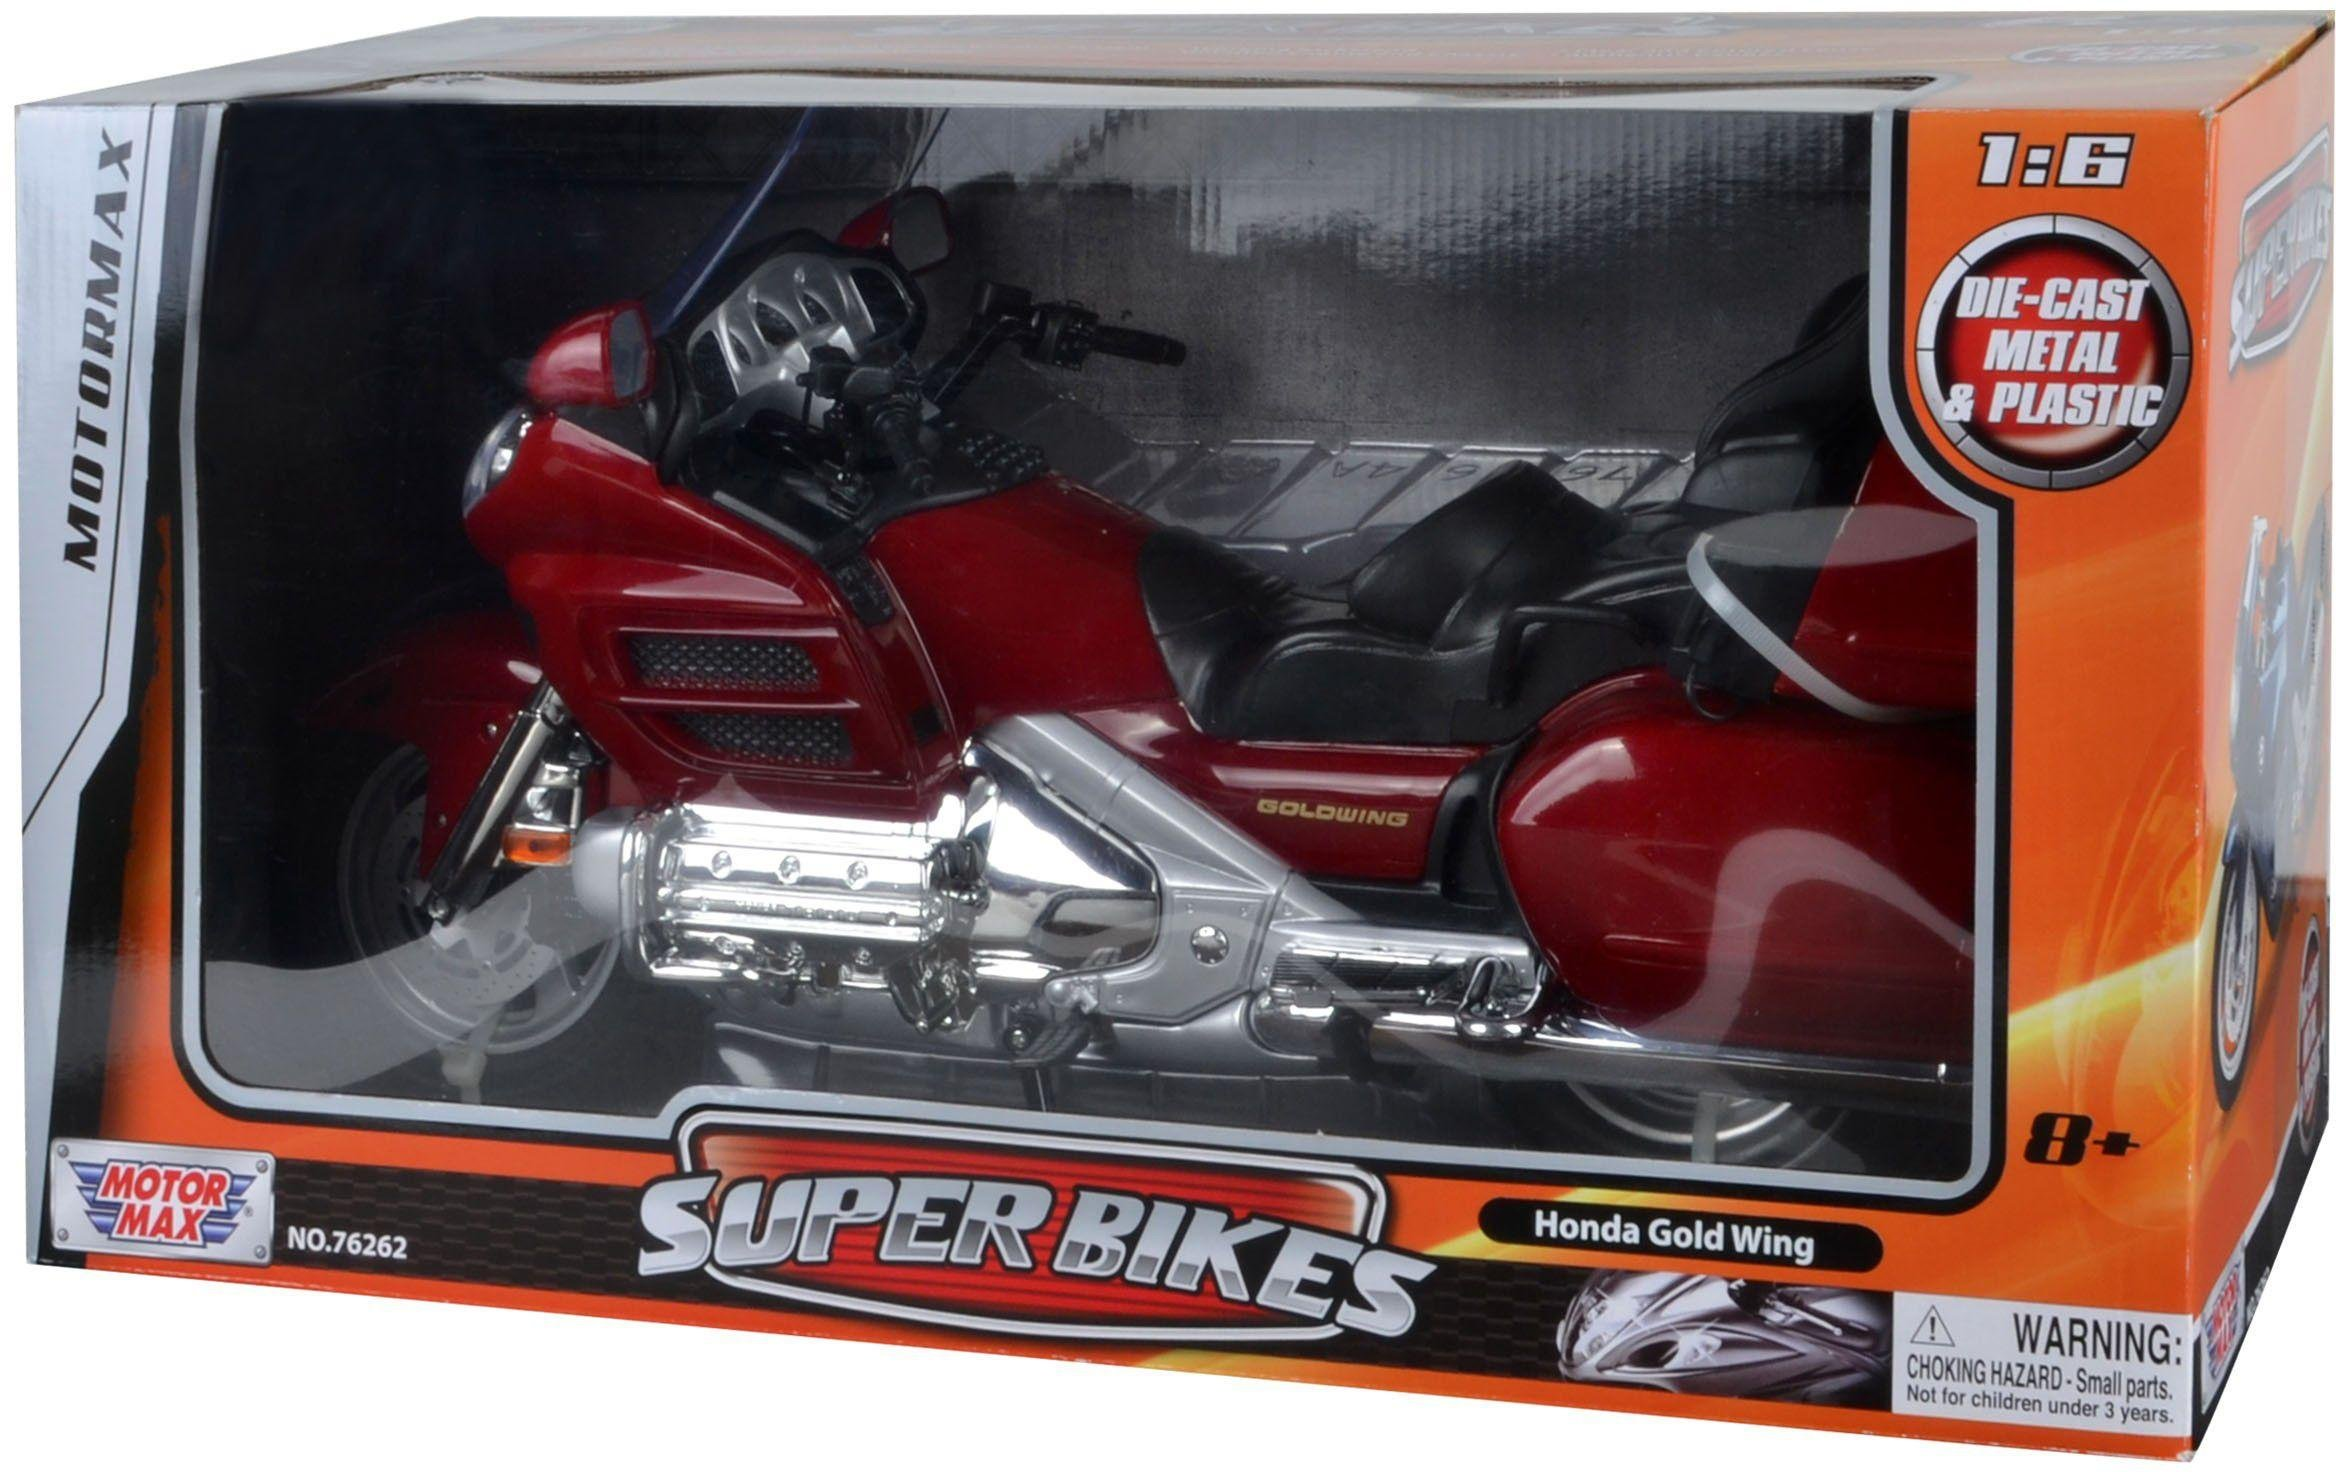 Image of Honda - Gold Wing Super Bike 1:6 Diecast - Model.